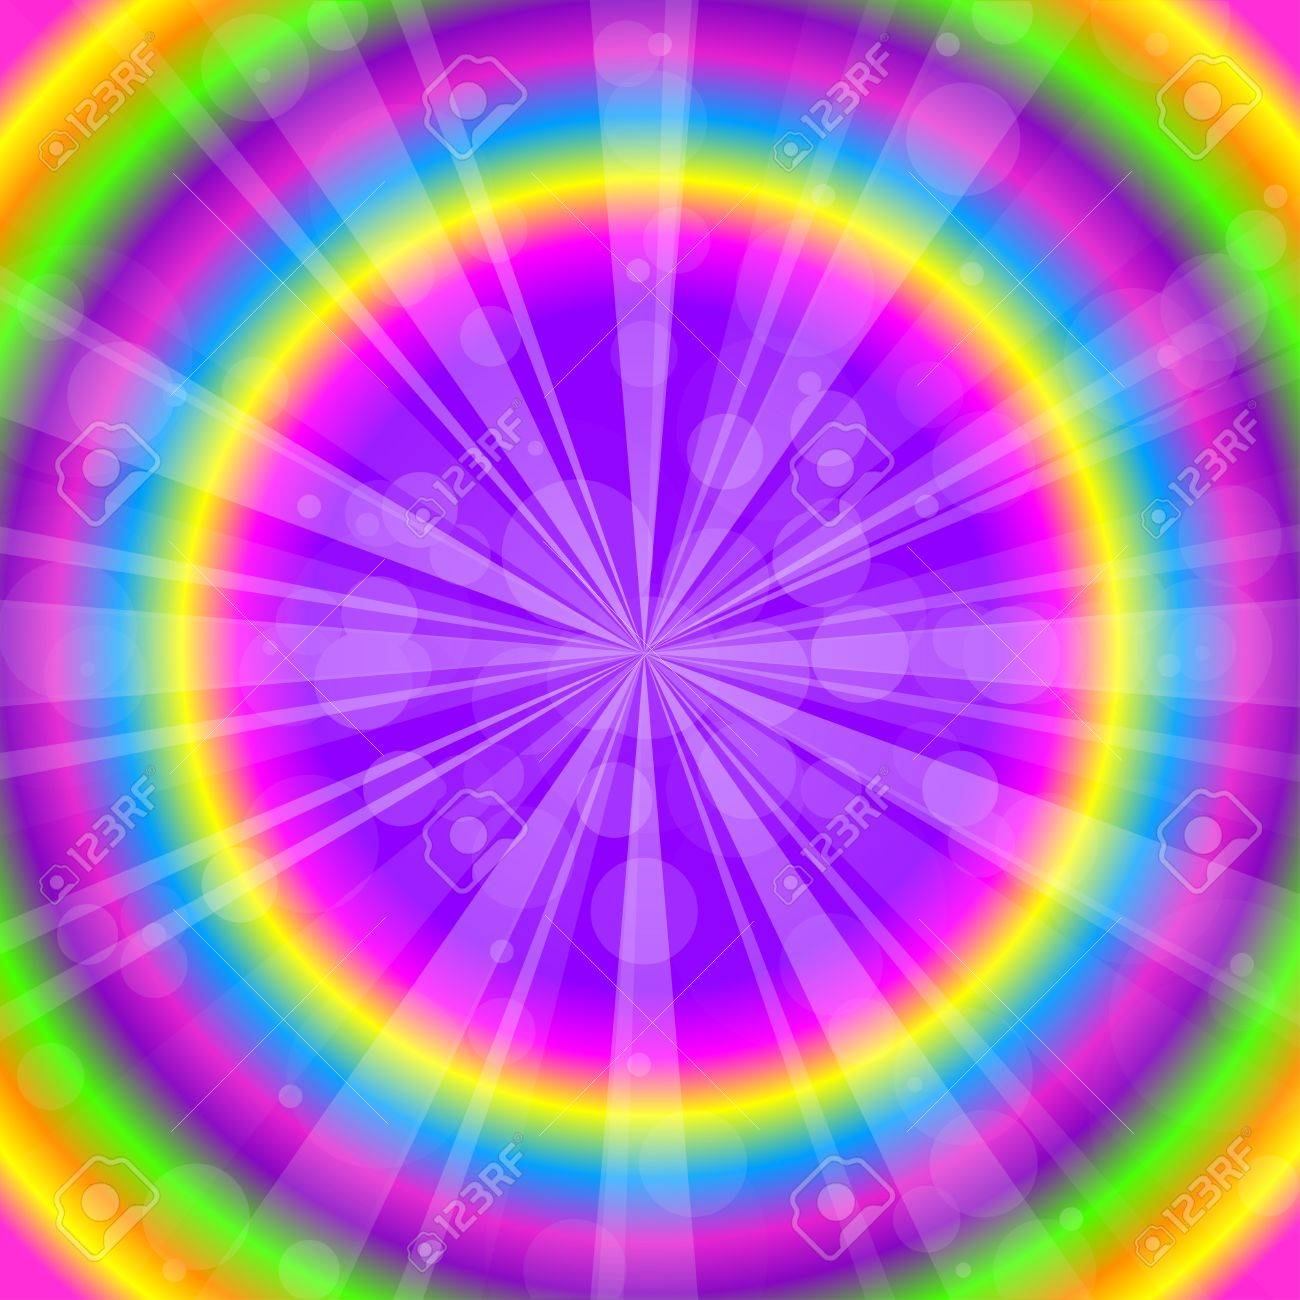 Vector colorful abstract background - 15210800